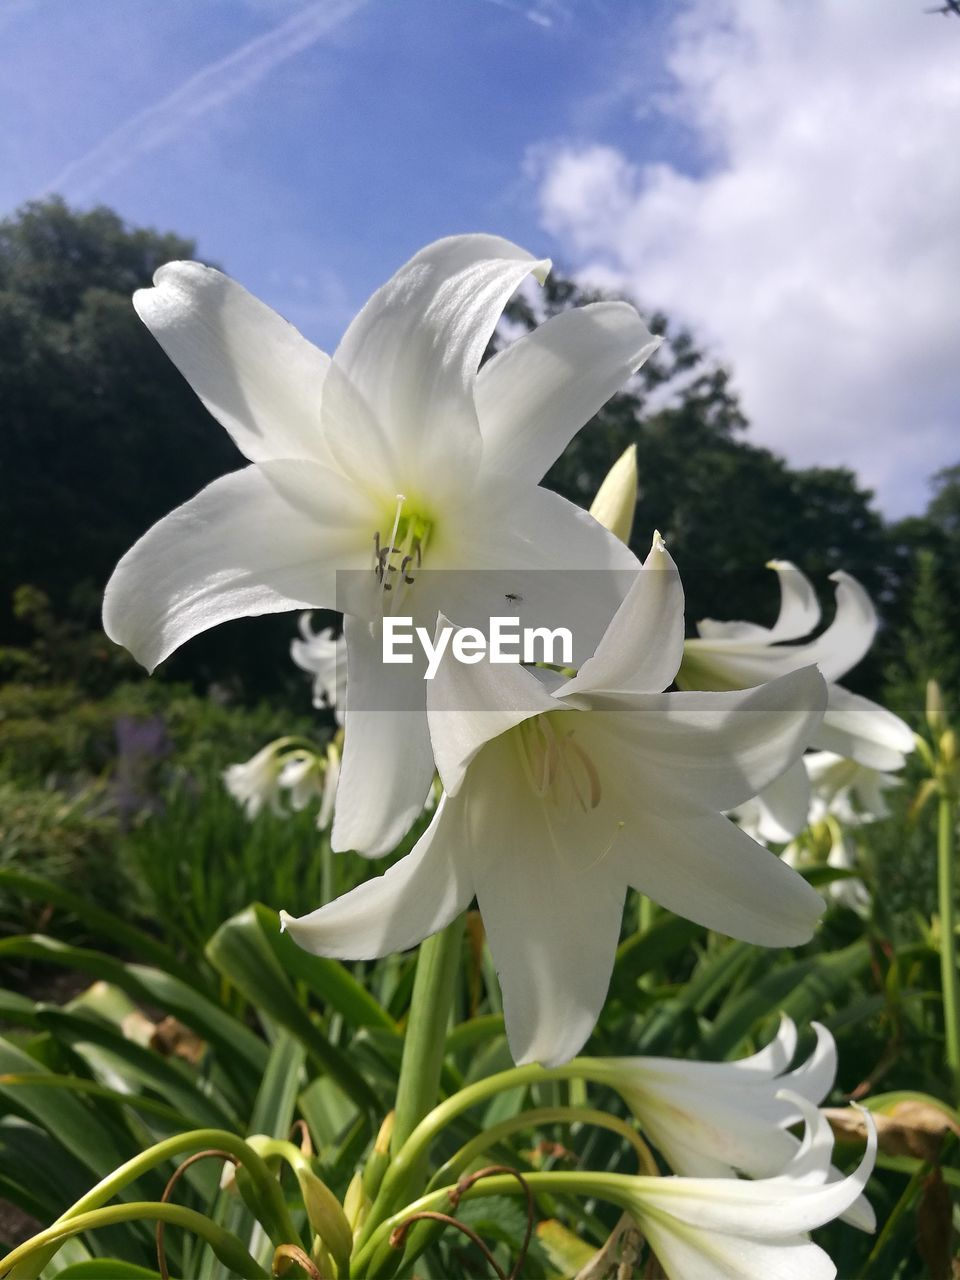 flower, white color, petal, fragility, growth, beauty in nature, nature, flower head, freshness, day, plant, outdoors, blooming, no people, close-up, tree, stamen, sky, snowdrop